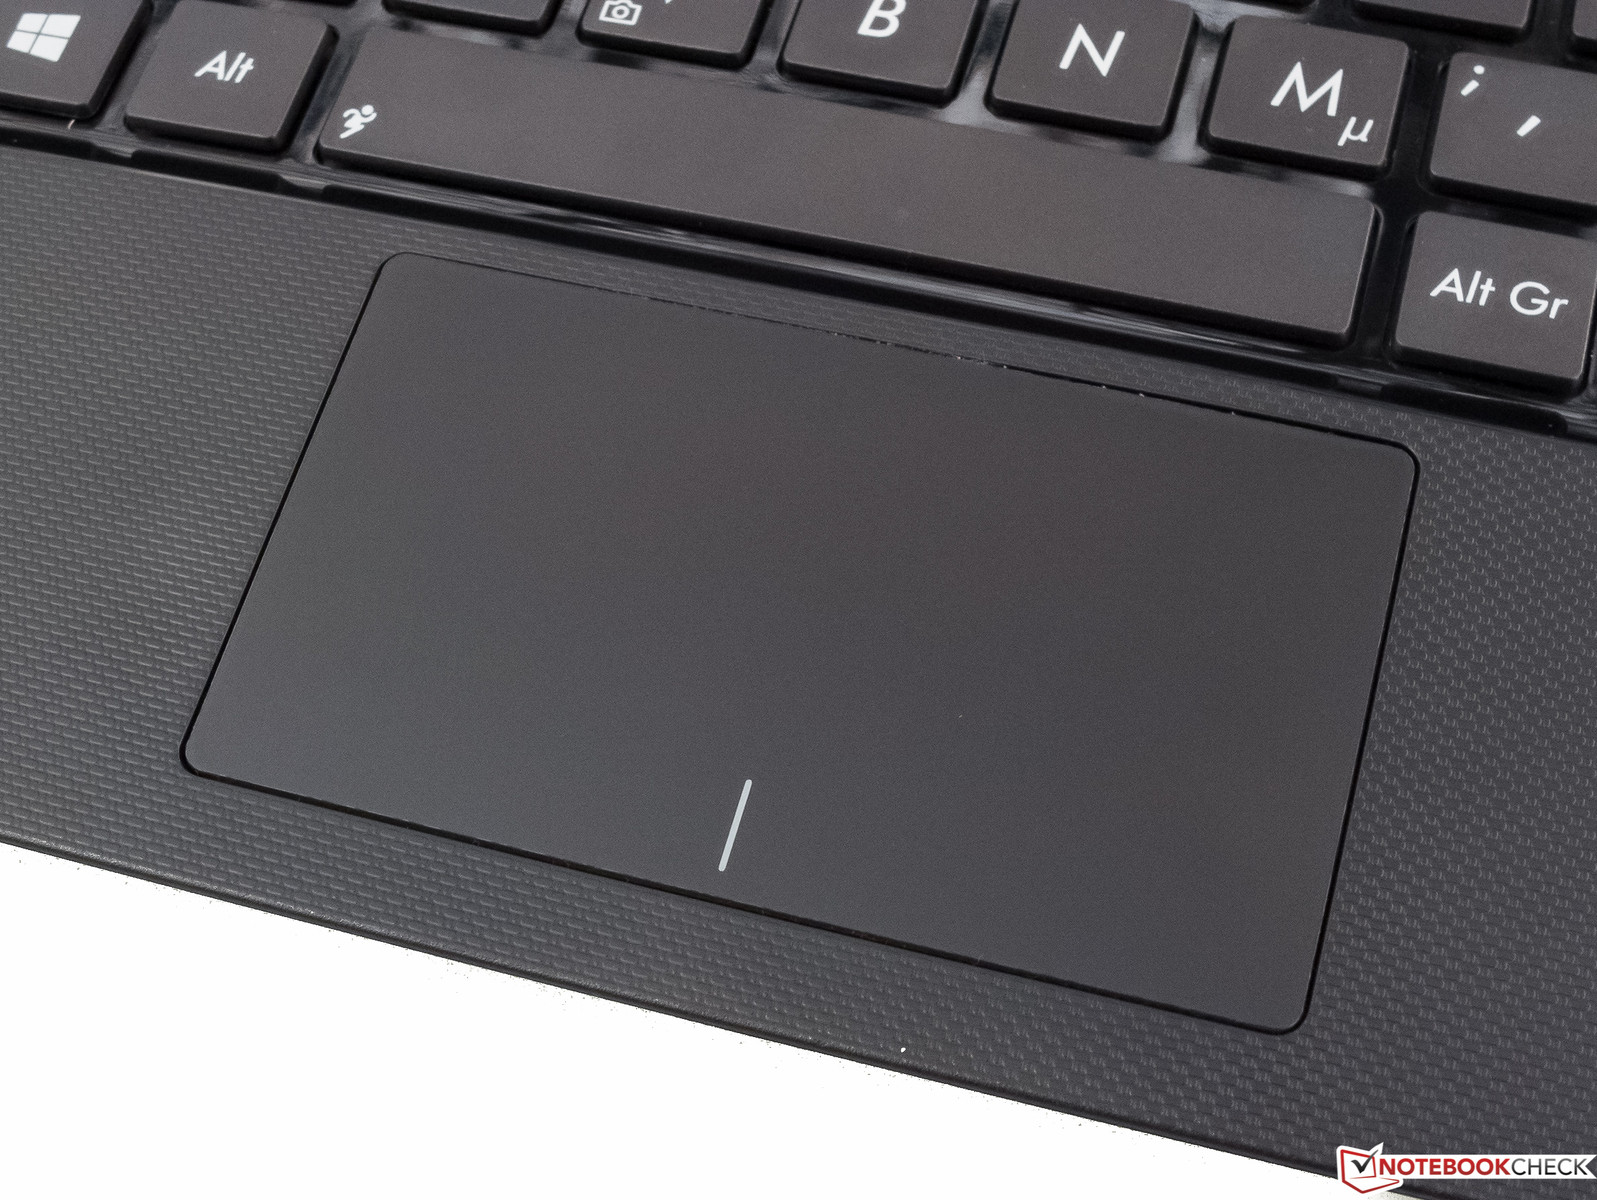 The touchpad is sleek and too small. The latter can barely be avoided.